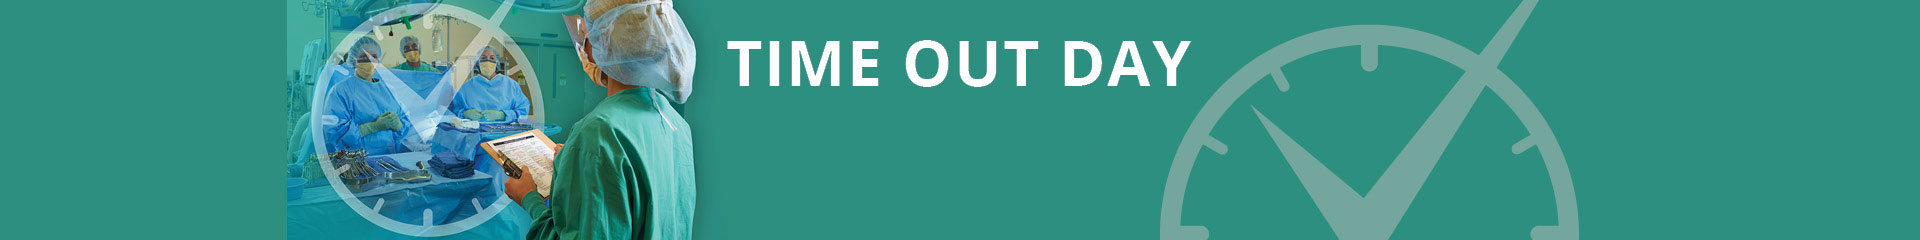 National Time Out Day 2019 - 15th Anniversary